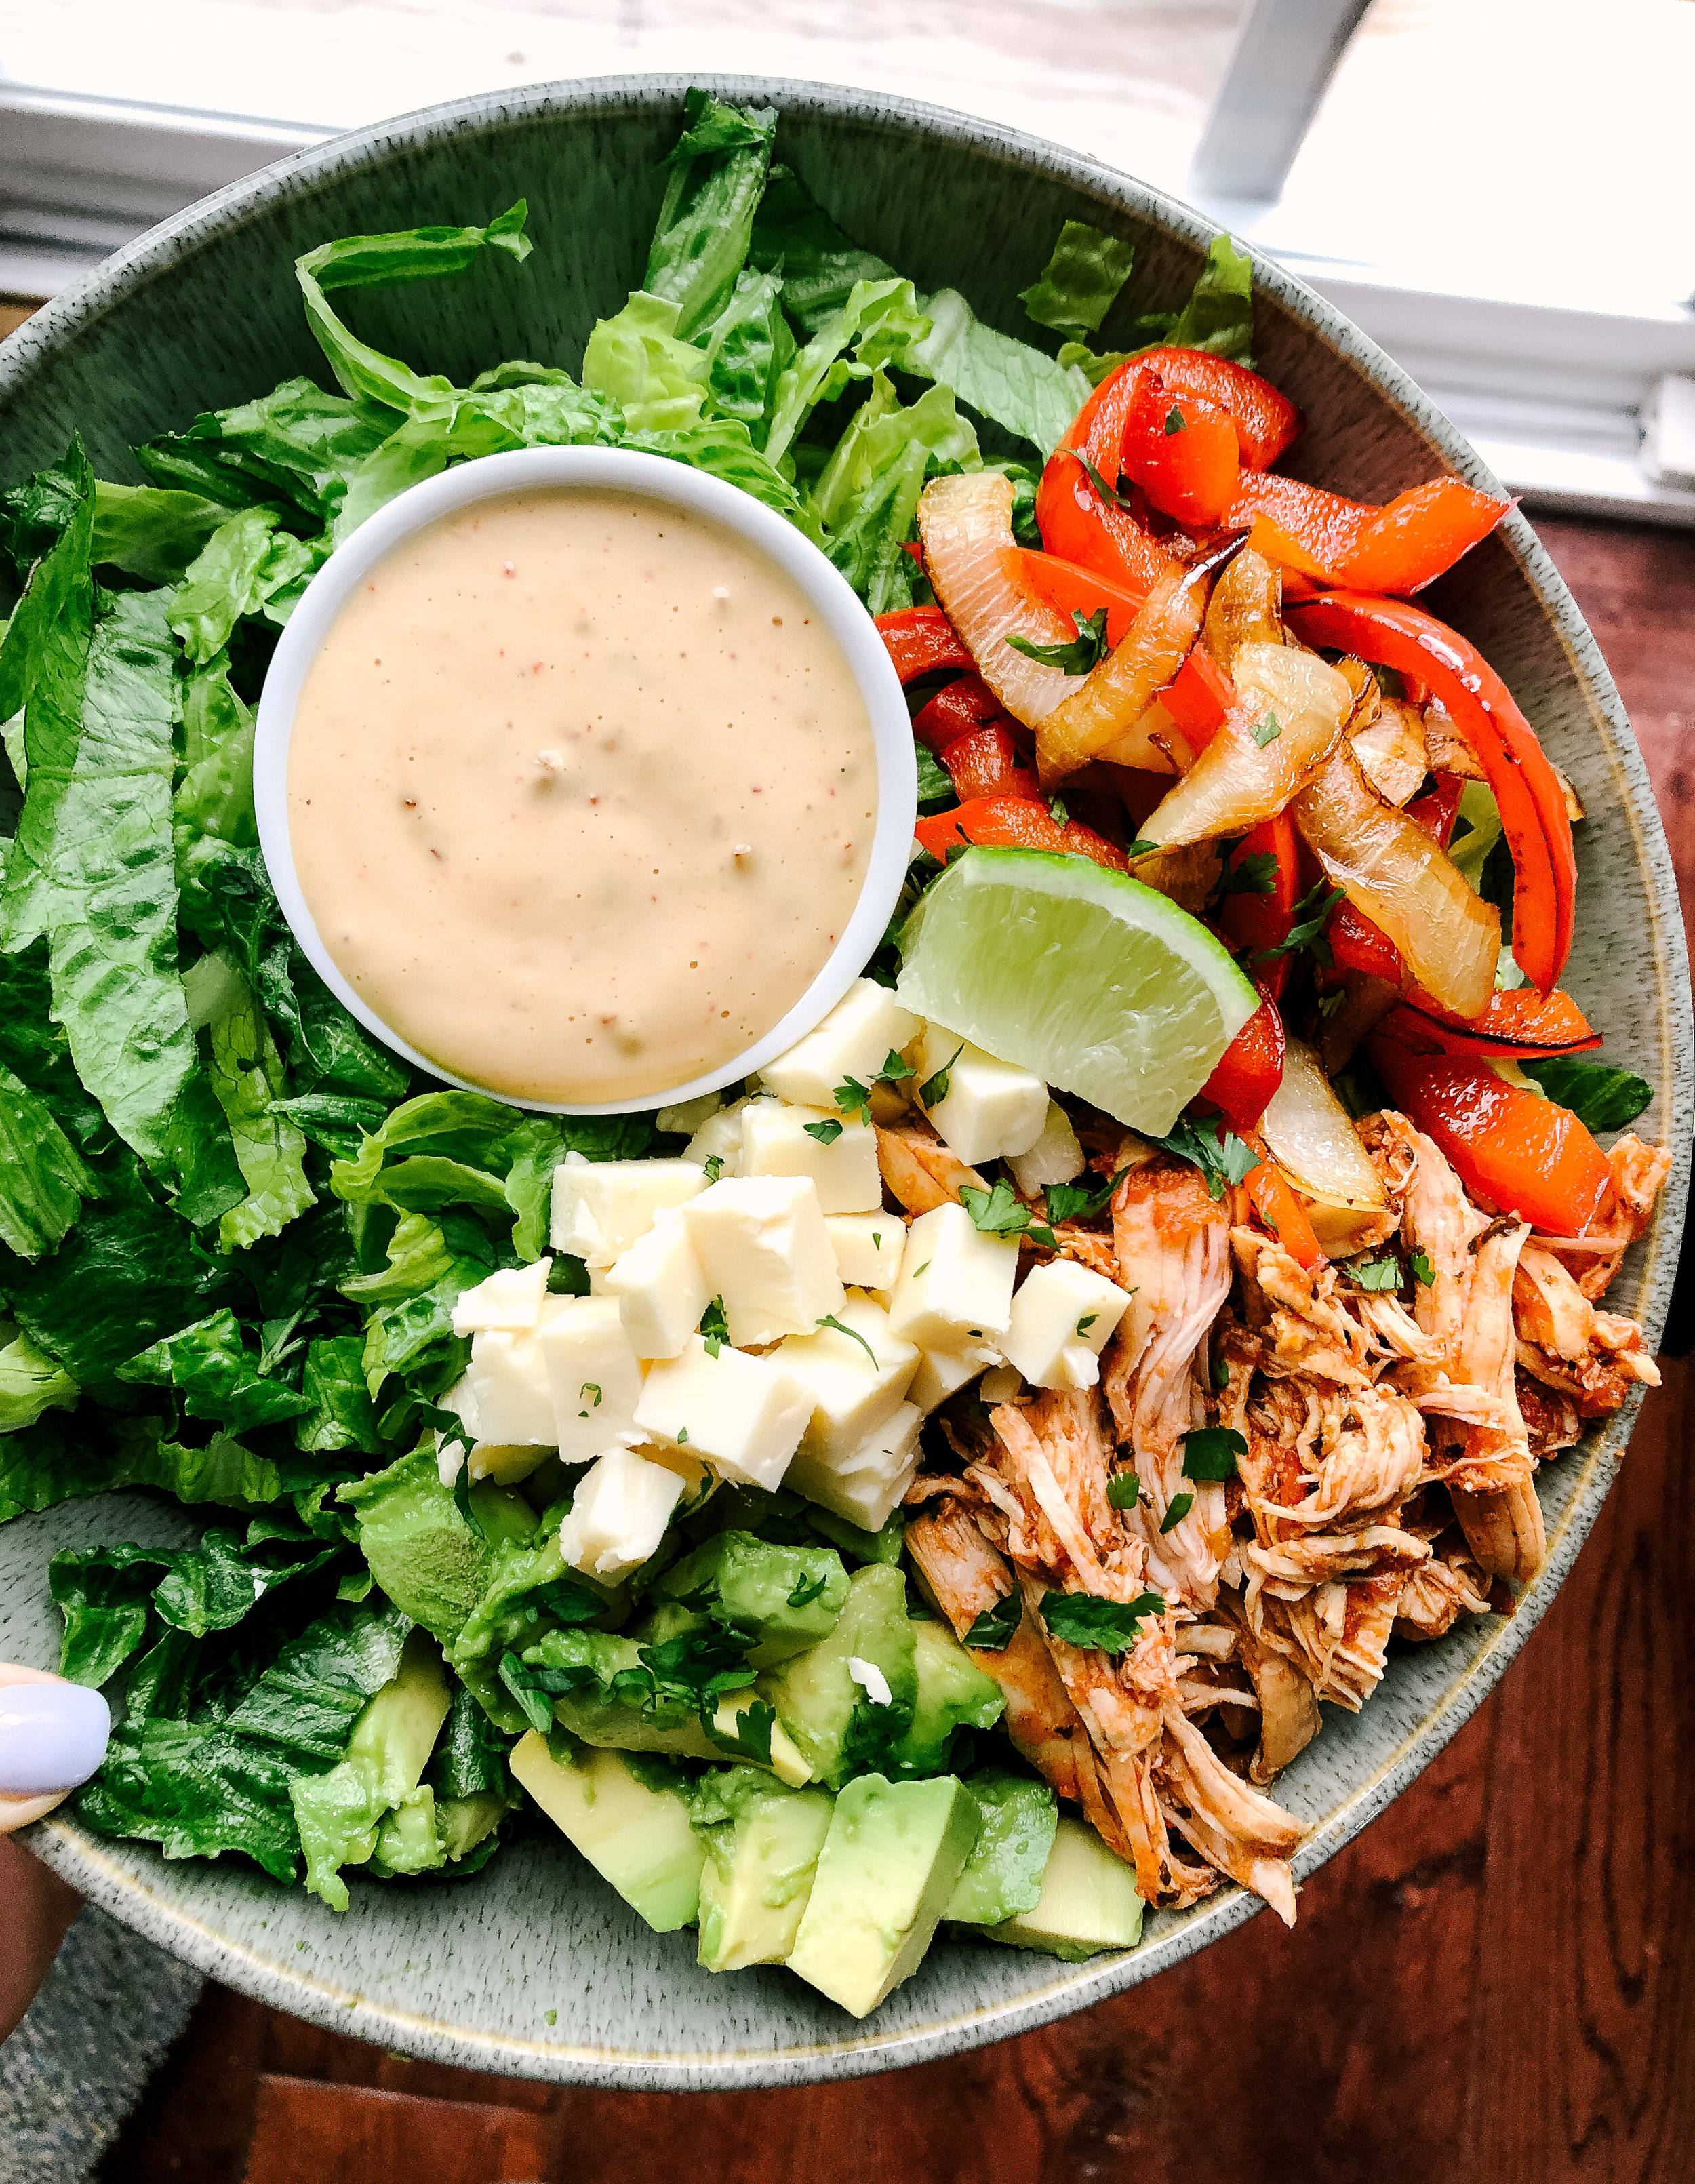 Chipotle ranch dressing is a delicious homemade whole30 and paleo approved dressing. This dressing is made in less than 20 minutes with simple ingredients.